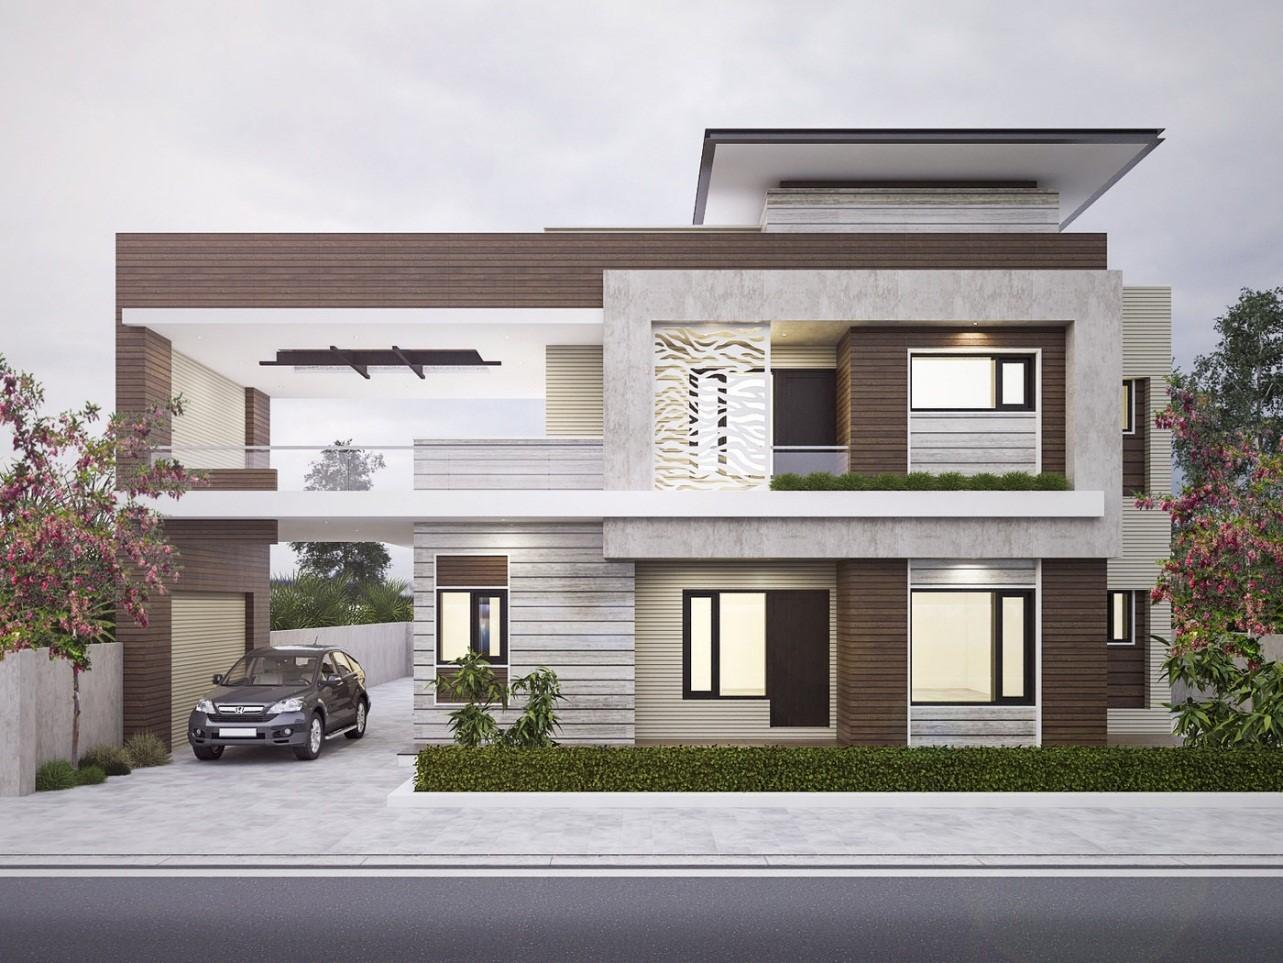 Top popular model 2-storey garden villas